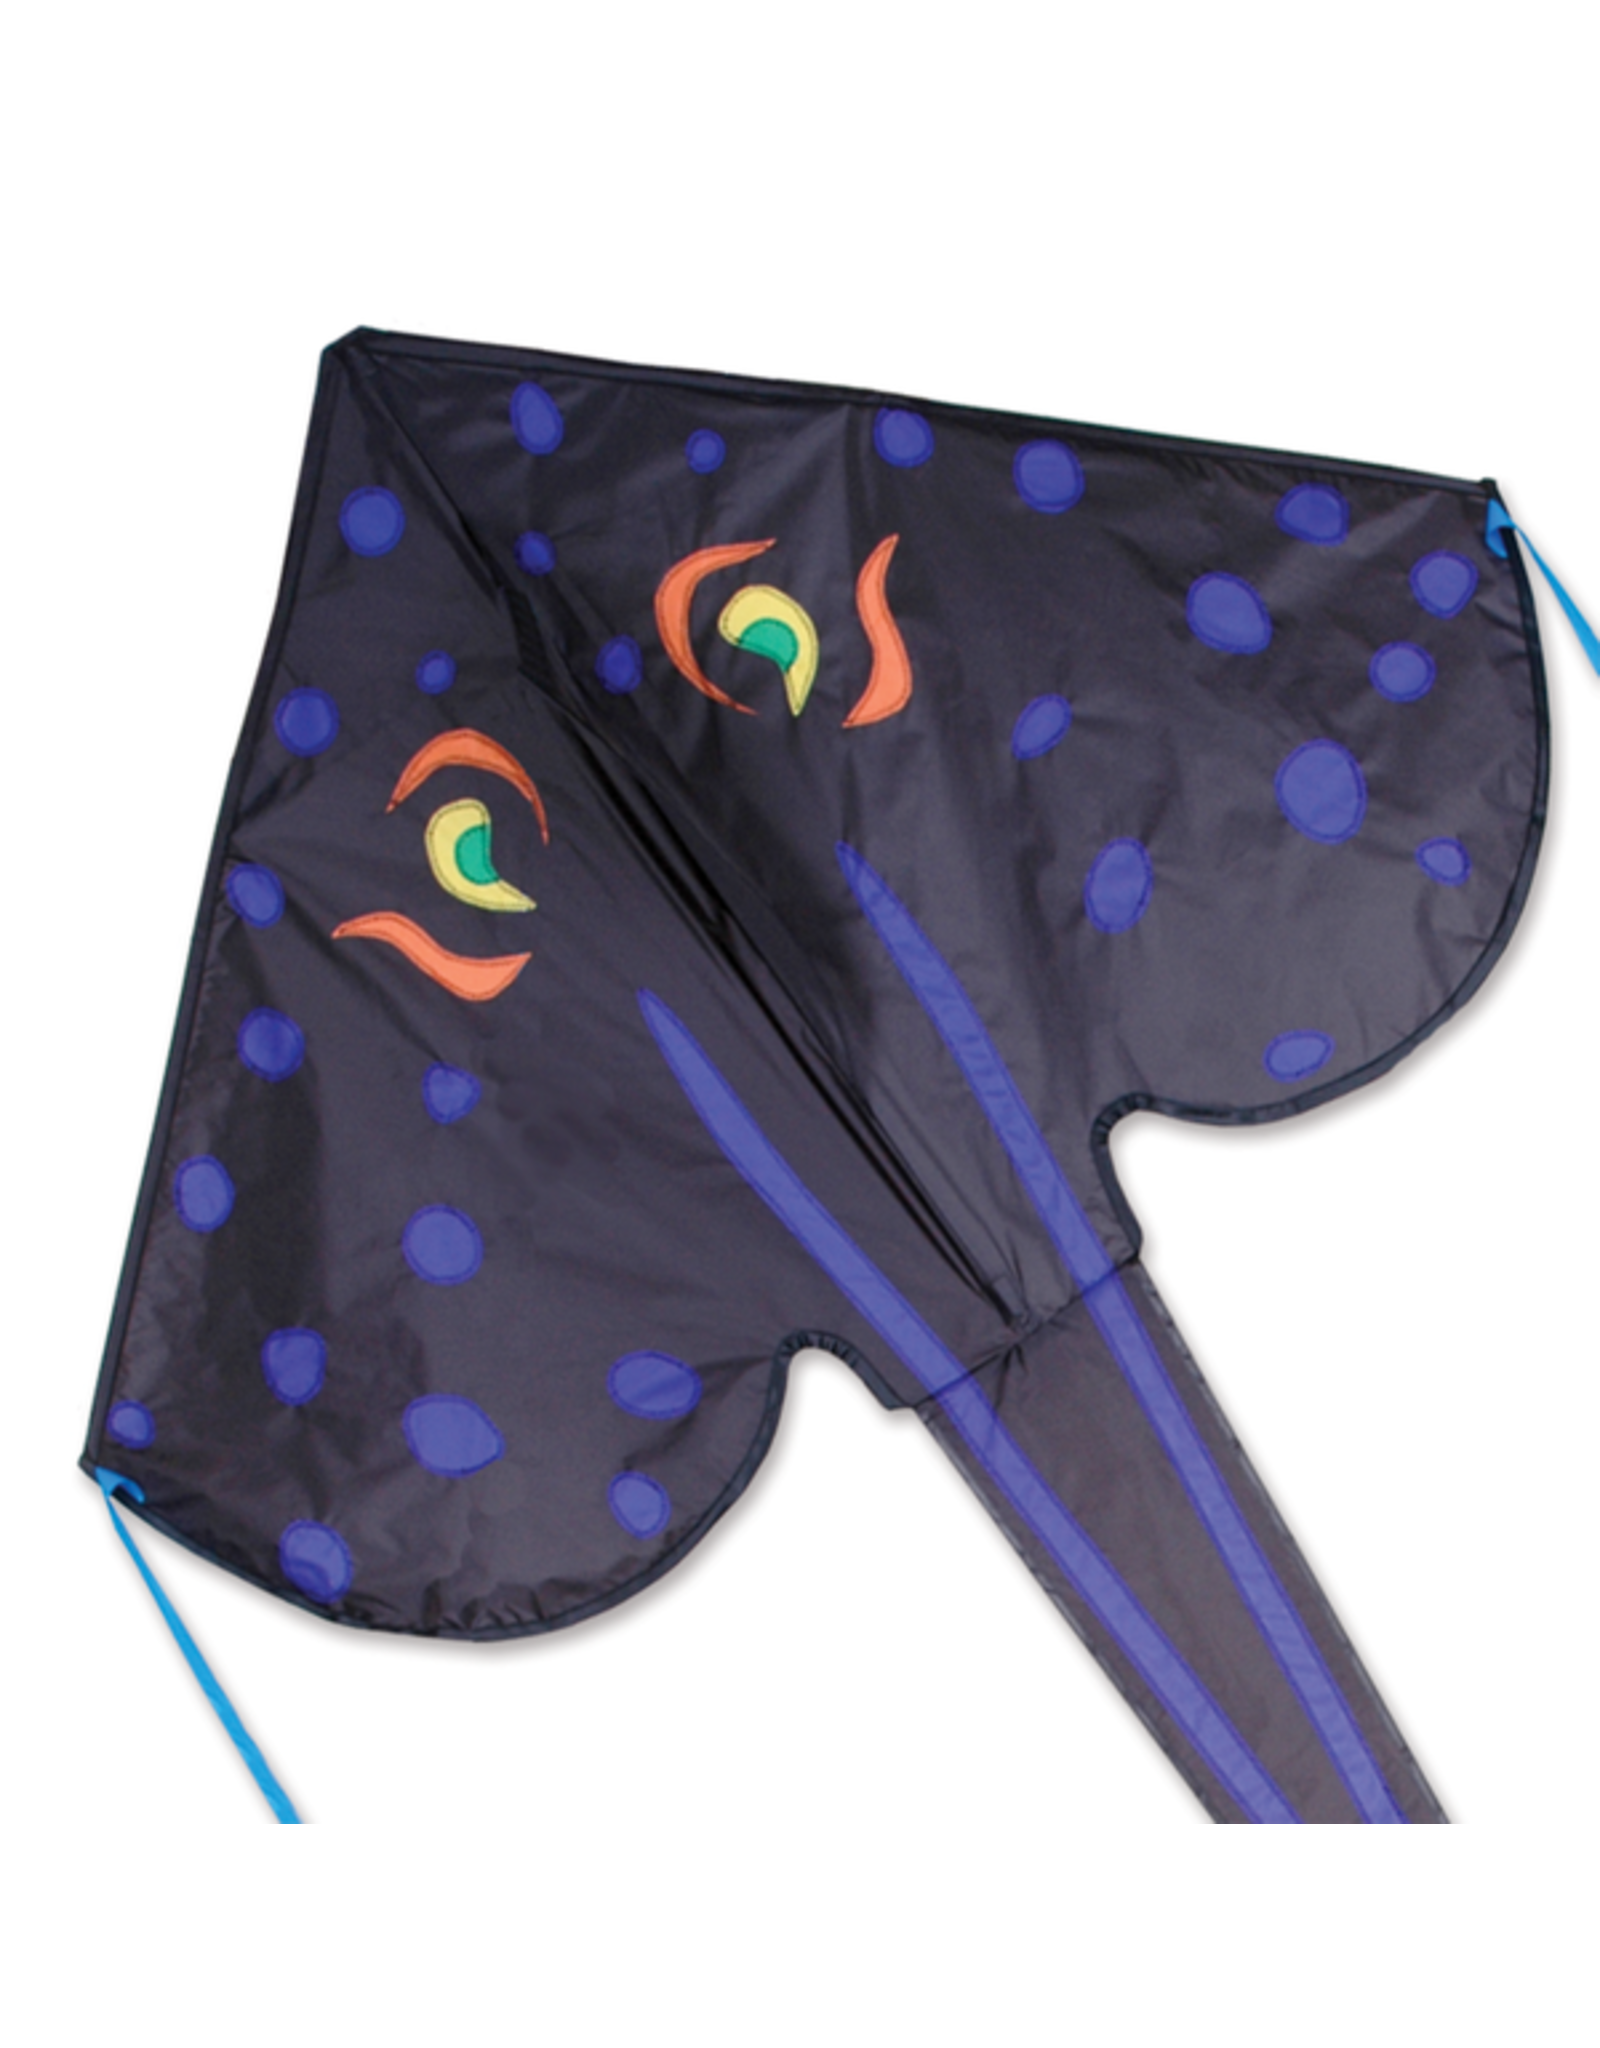 Premier Kites Large Easy Flyer Kite, Stingray